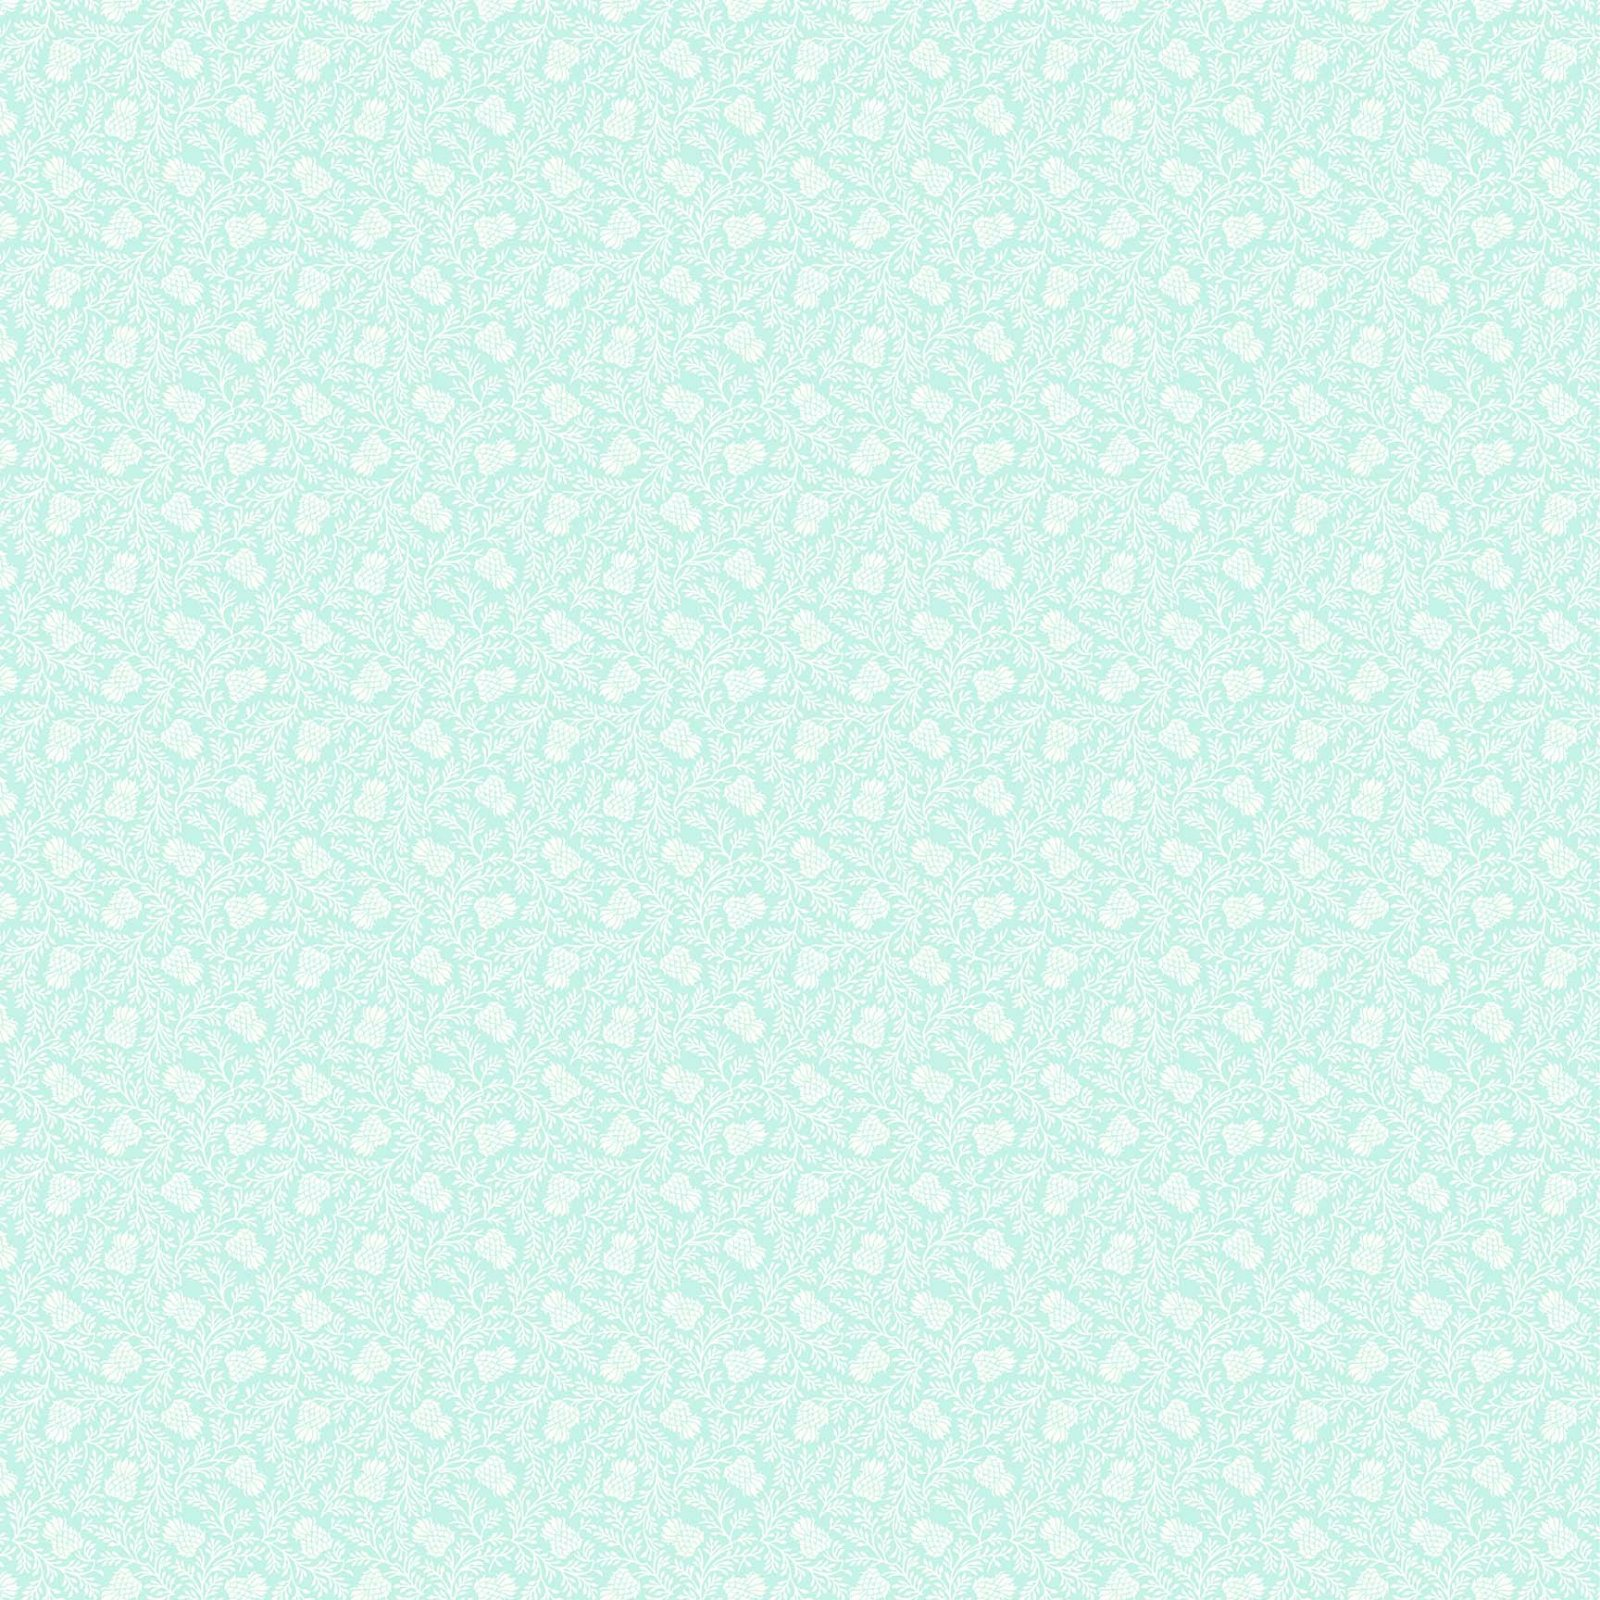 STAG AND THISTLE LIGHT TURQUOISE 23309-62